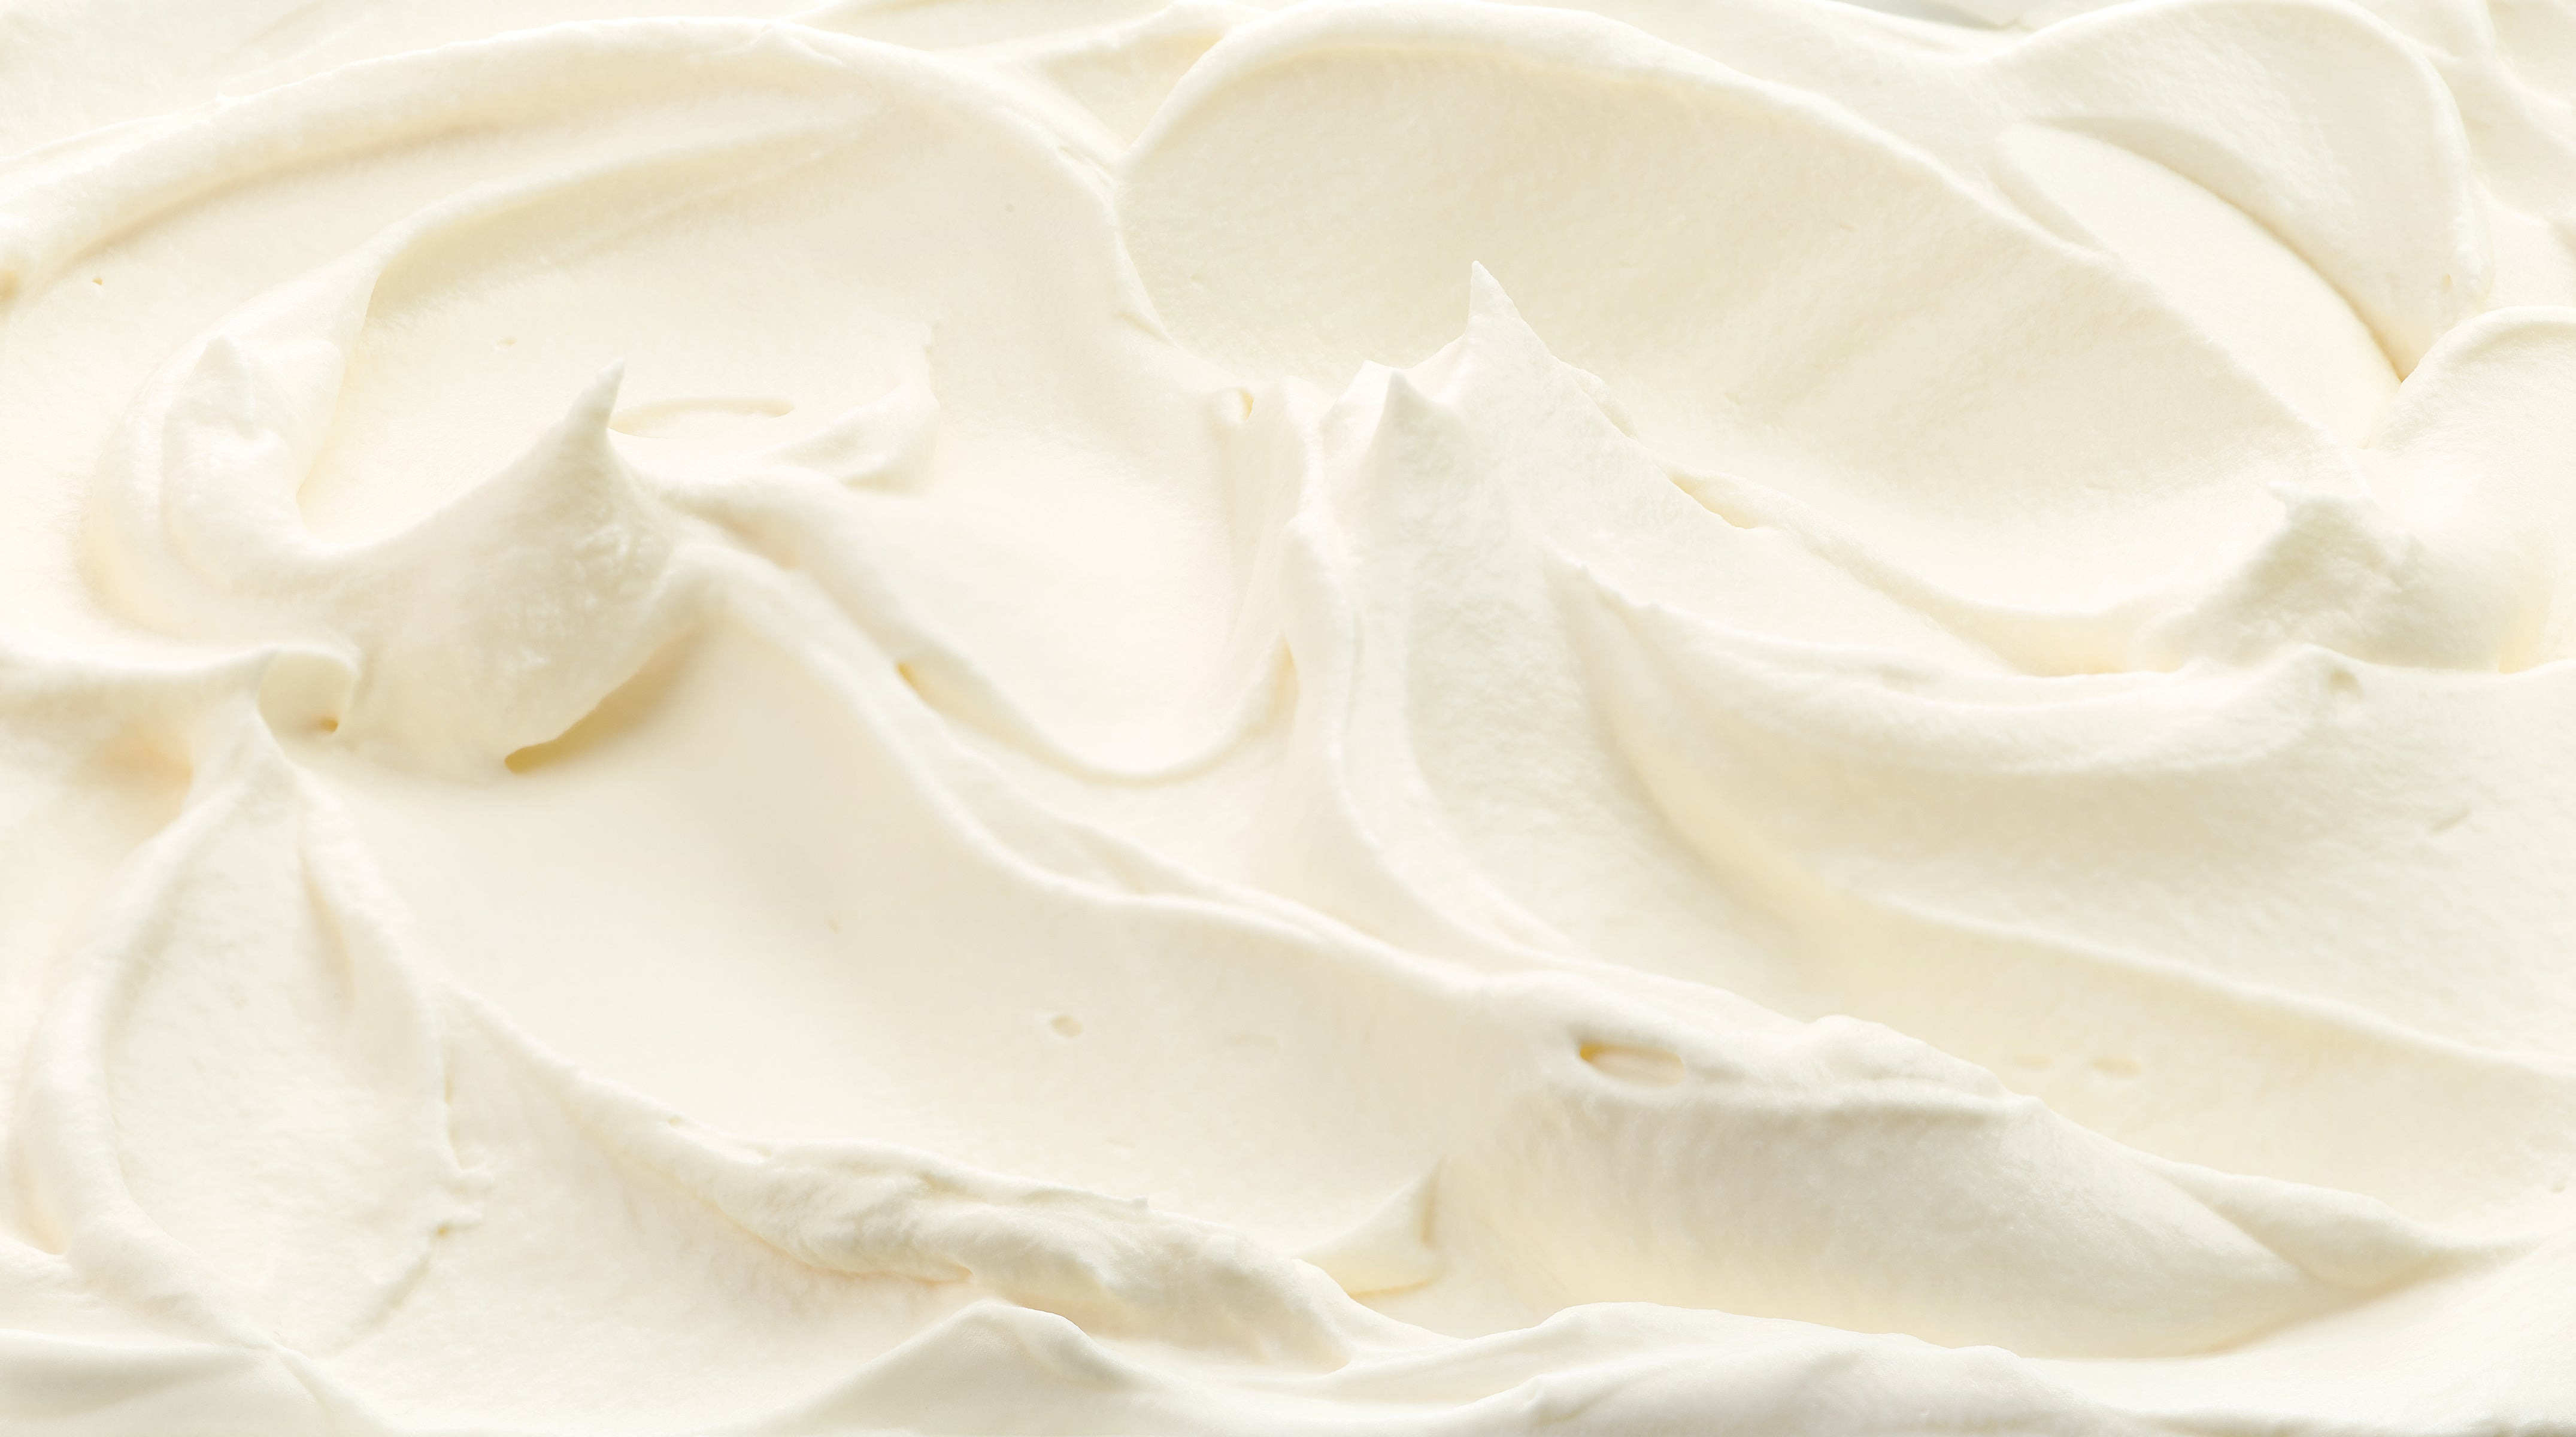 Texture of raw Shea Butter and Coconut Oil moisturiser